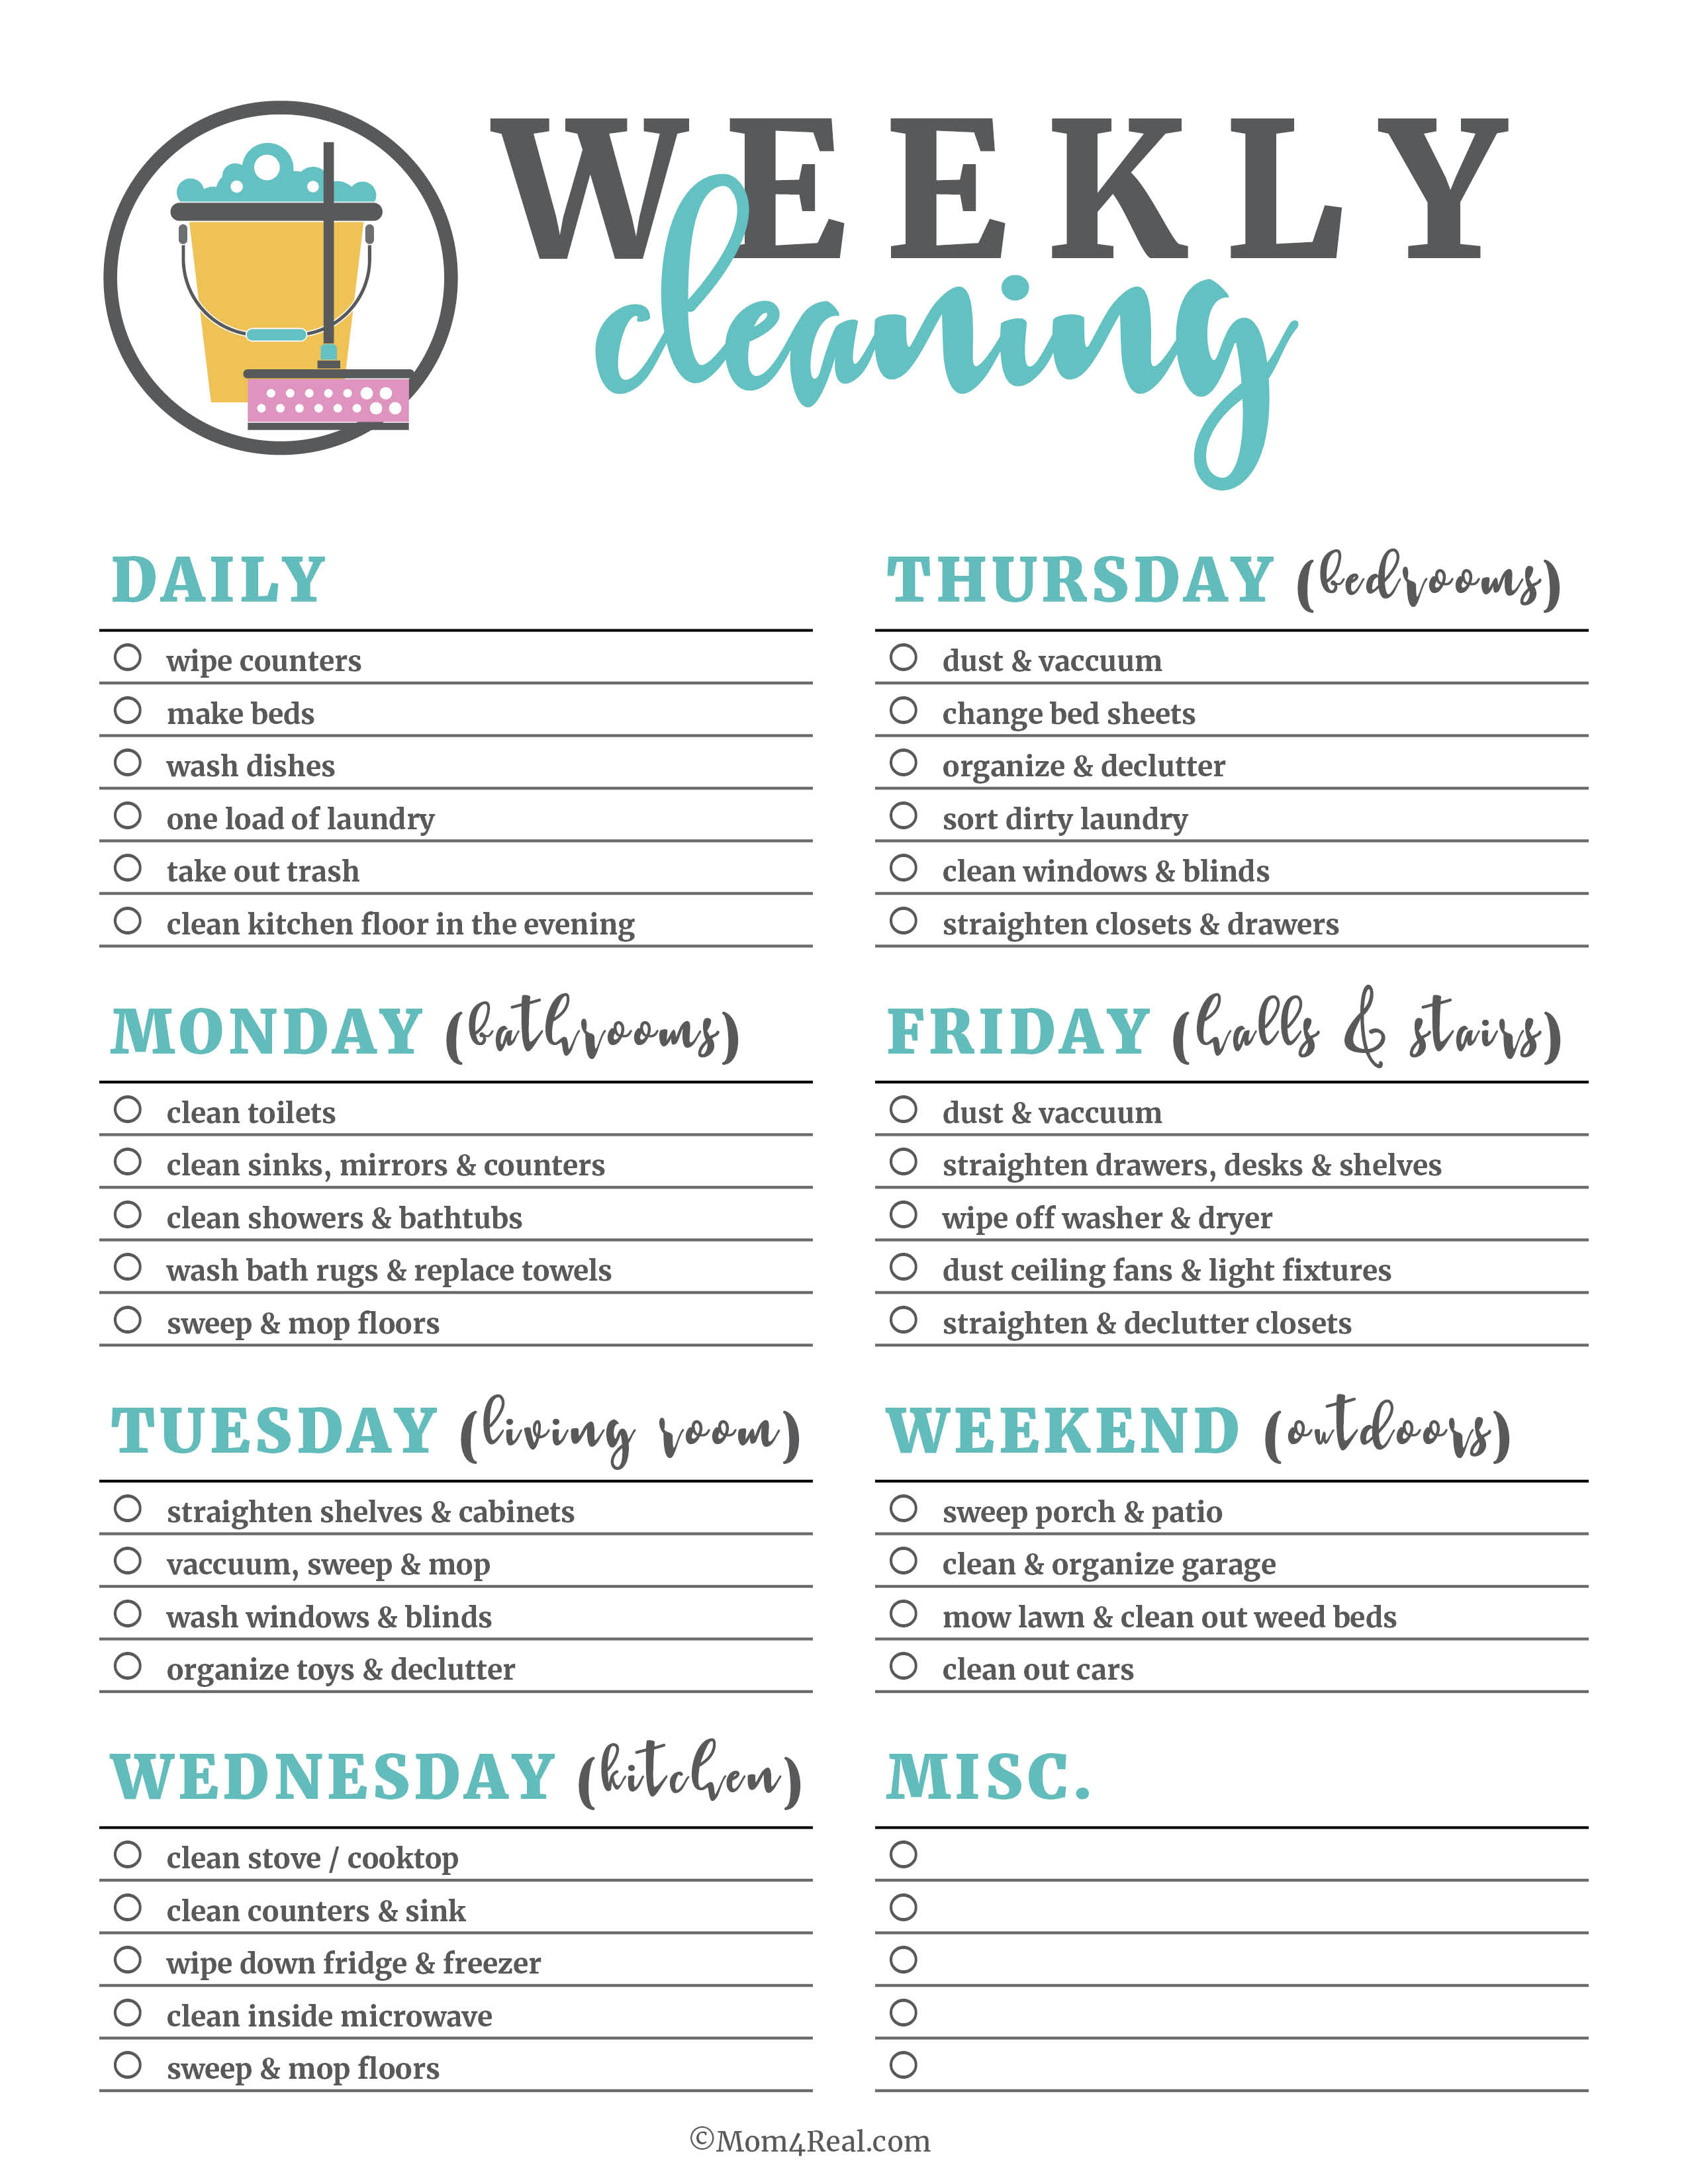 Printable Cleaning Checklists For Daily, Weekly And Monthly Cleaning - Free Printable House Cleaning Checklist